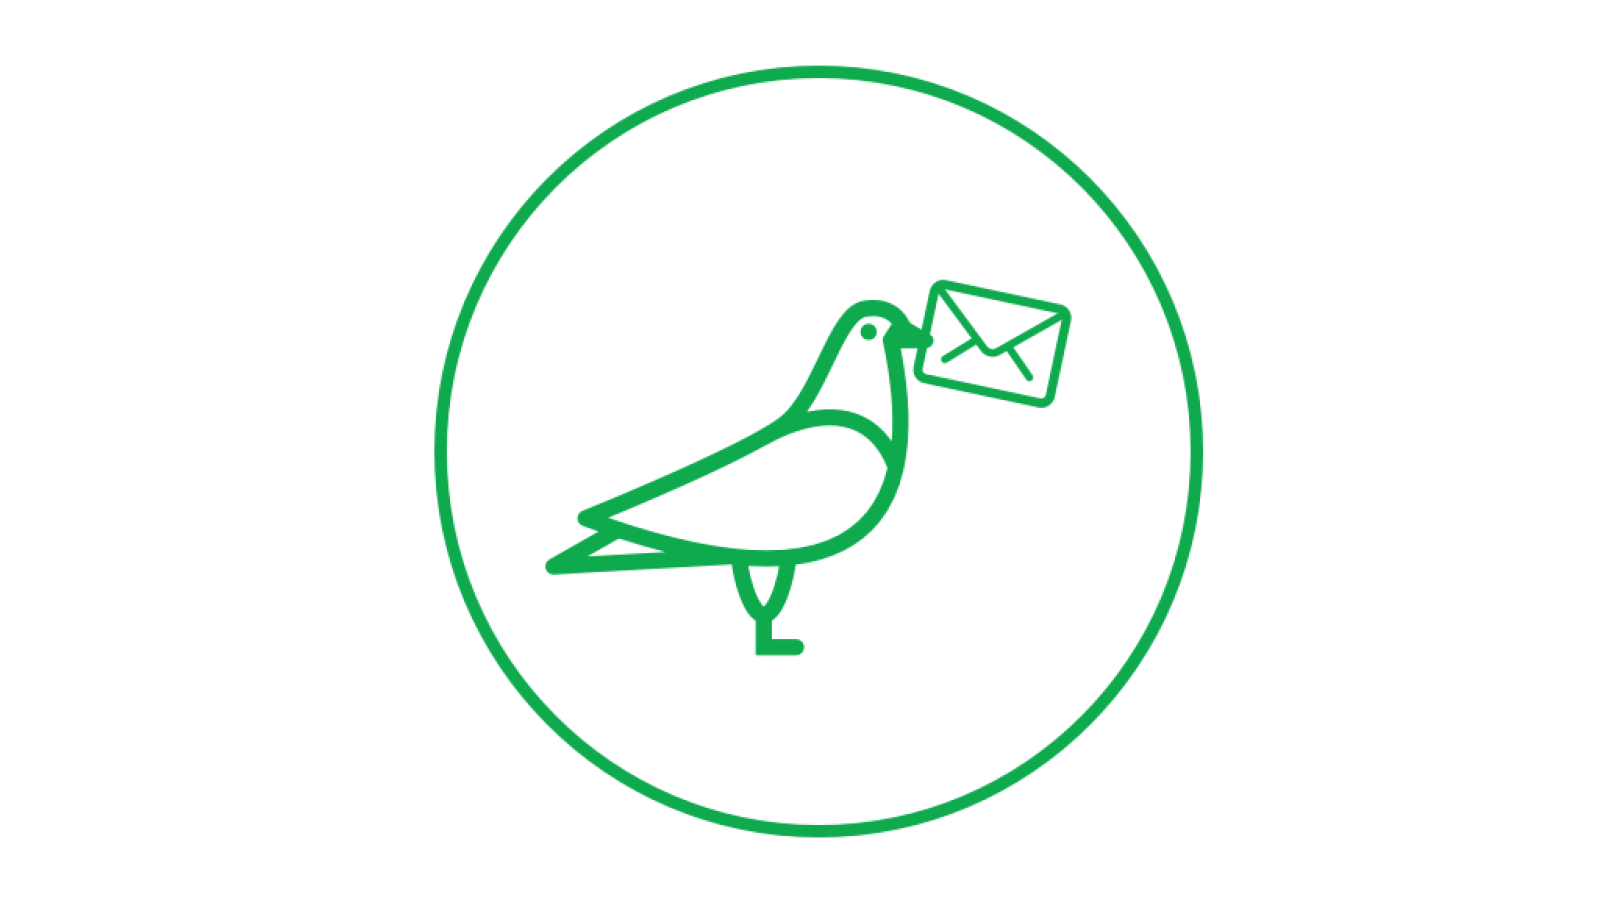 Bird holding envelope icon in green circle